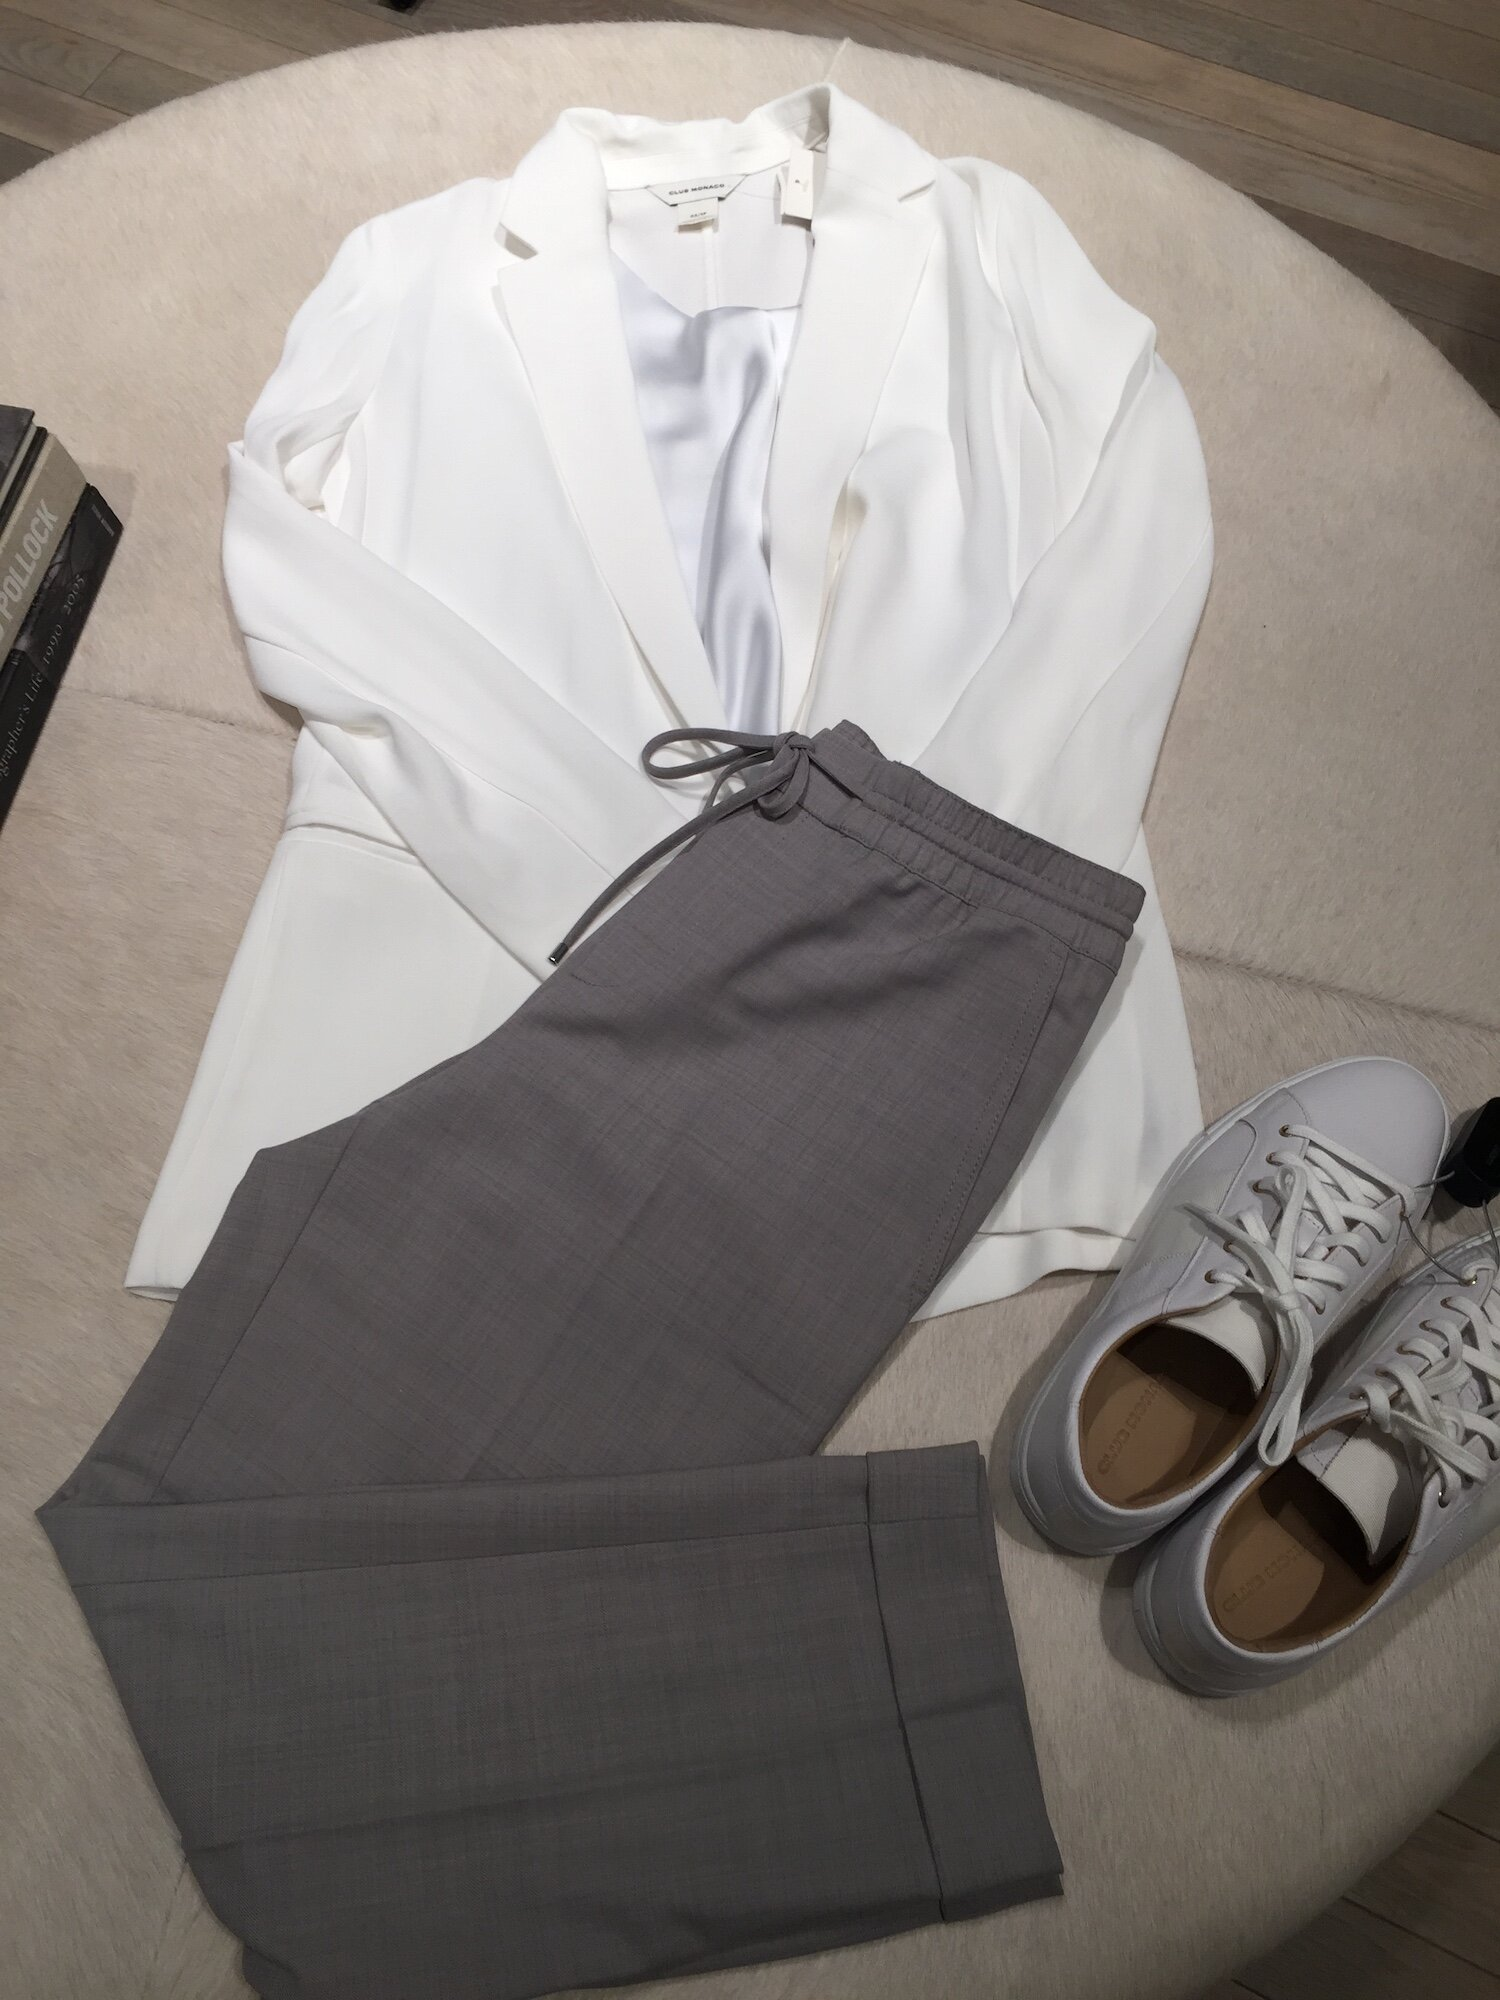 While blazers usually scream 'office', this one is unstructured making it a perfect choice. Paired with a simple grey wool loose slack and white kicks, it's a comfortable yet chic office look. Switch out the blazer for a simple black turtleneck for weekend brunch. Outfit from Club Monaco.